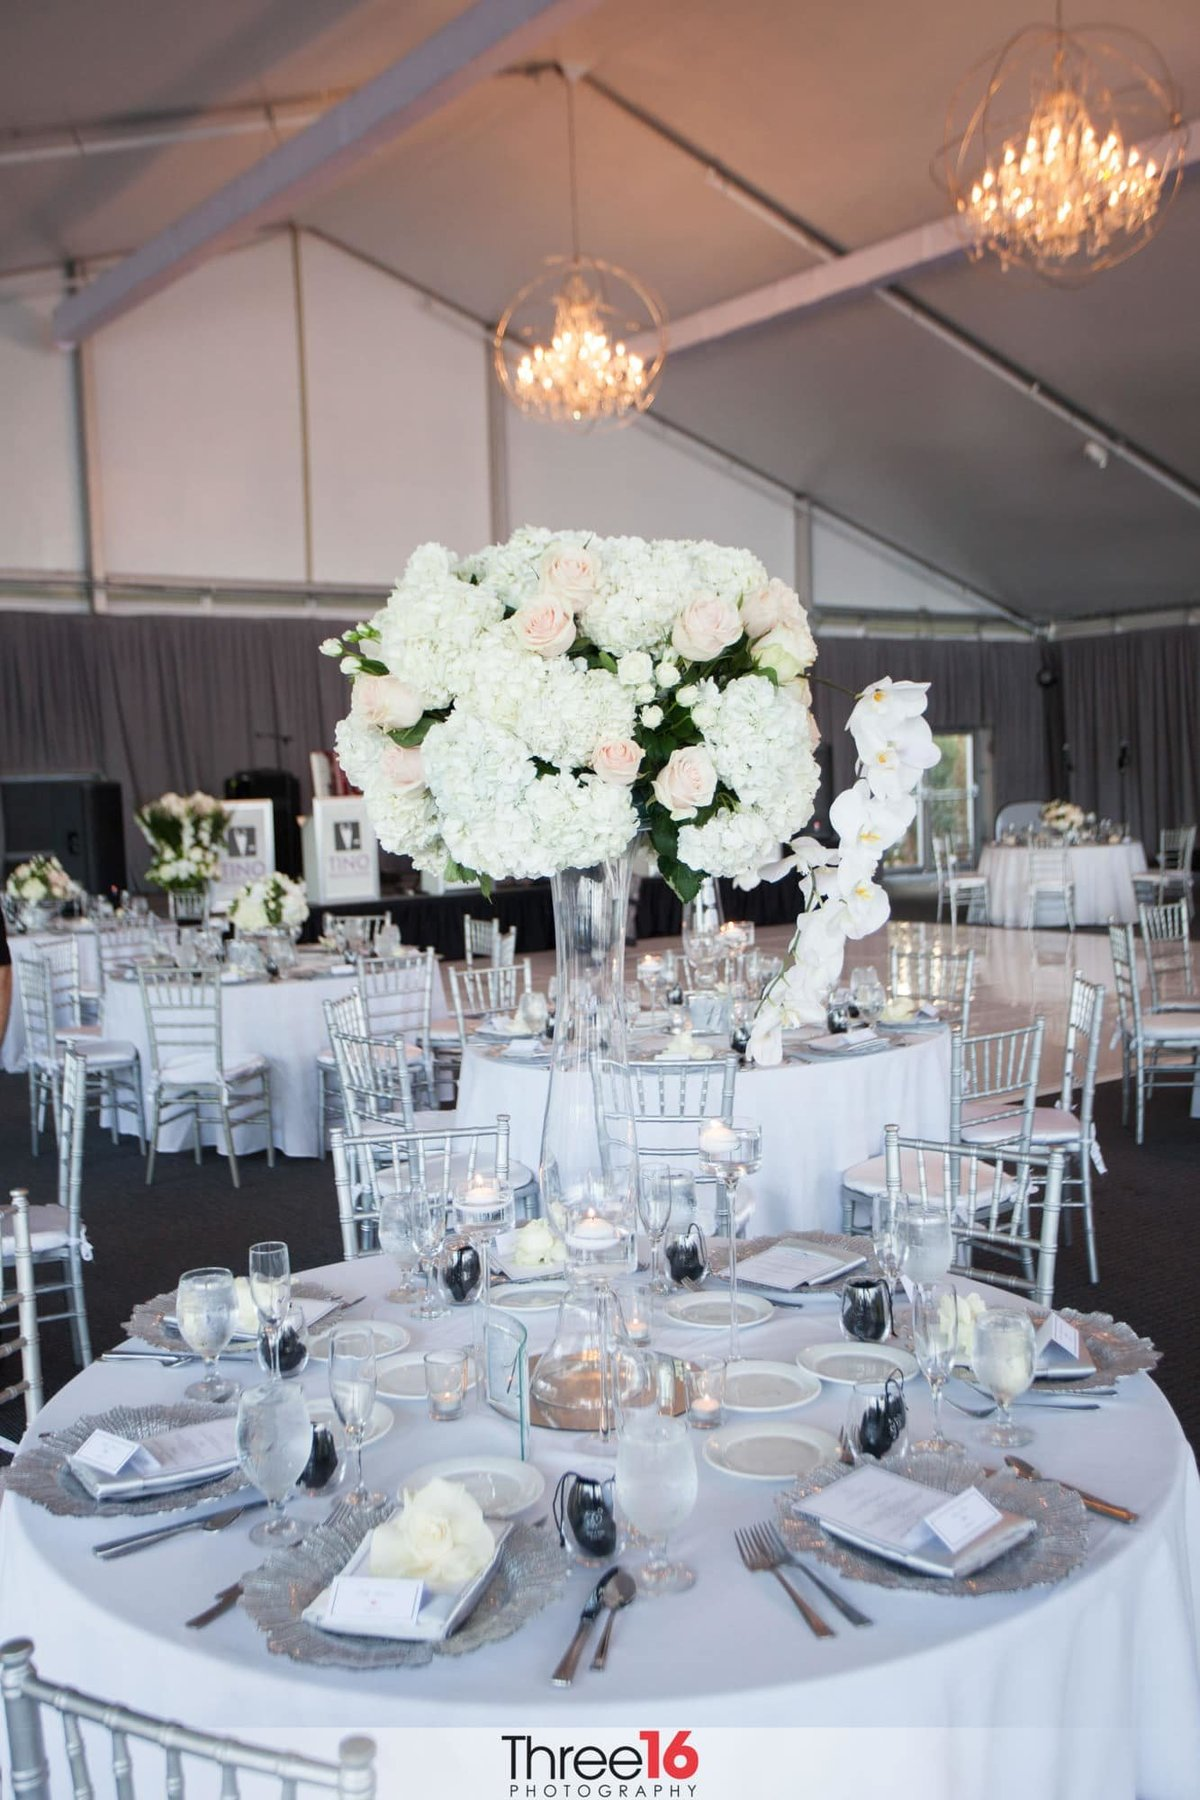 Beautiful wedding reception table setup with large centerpieces